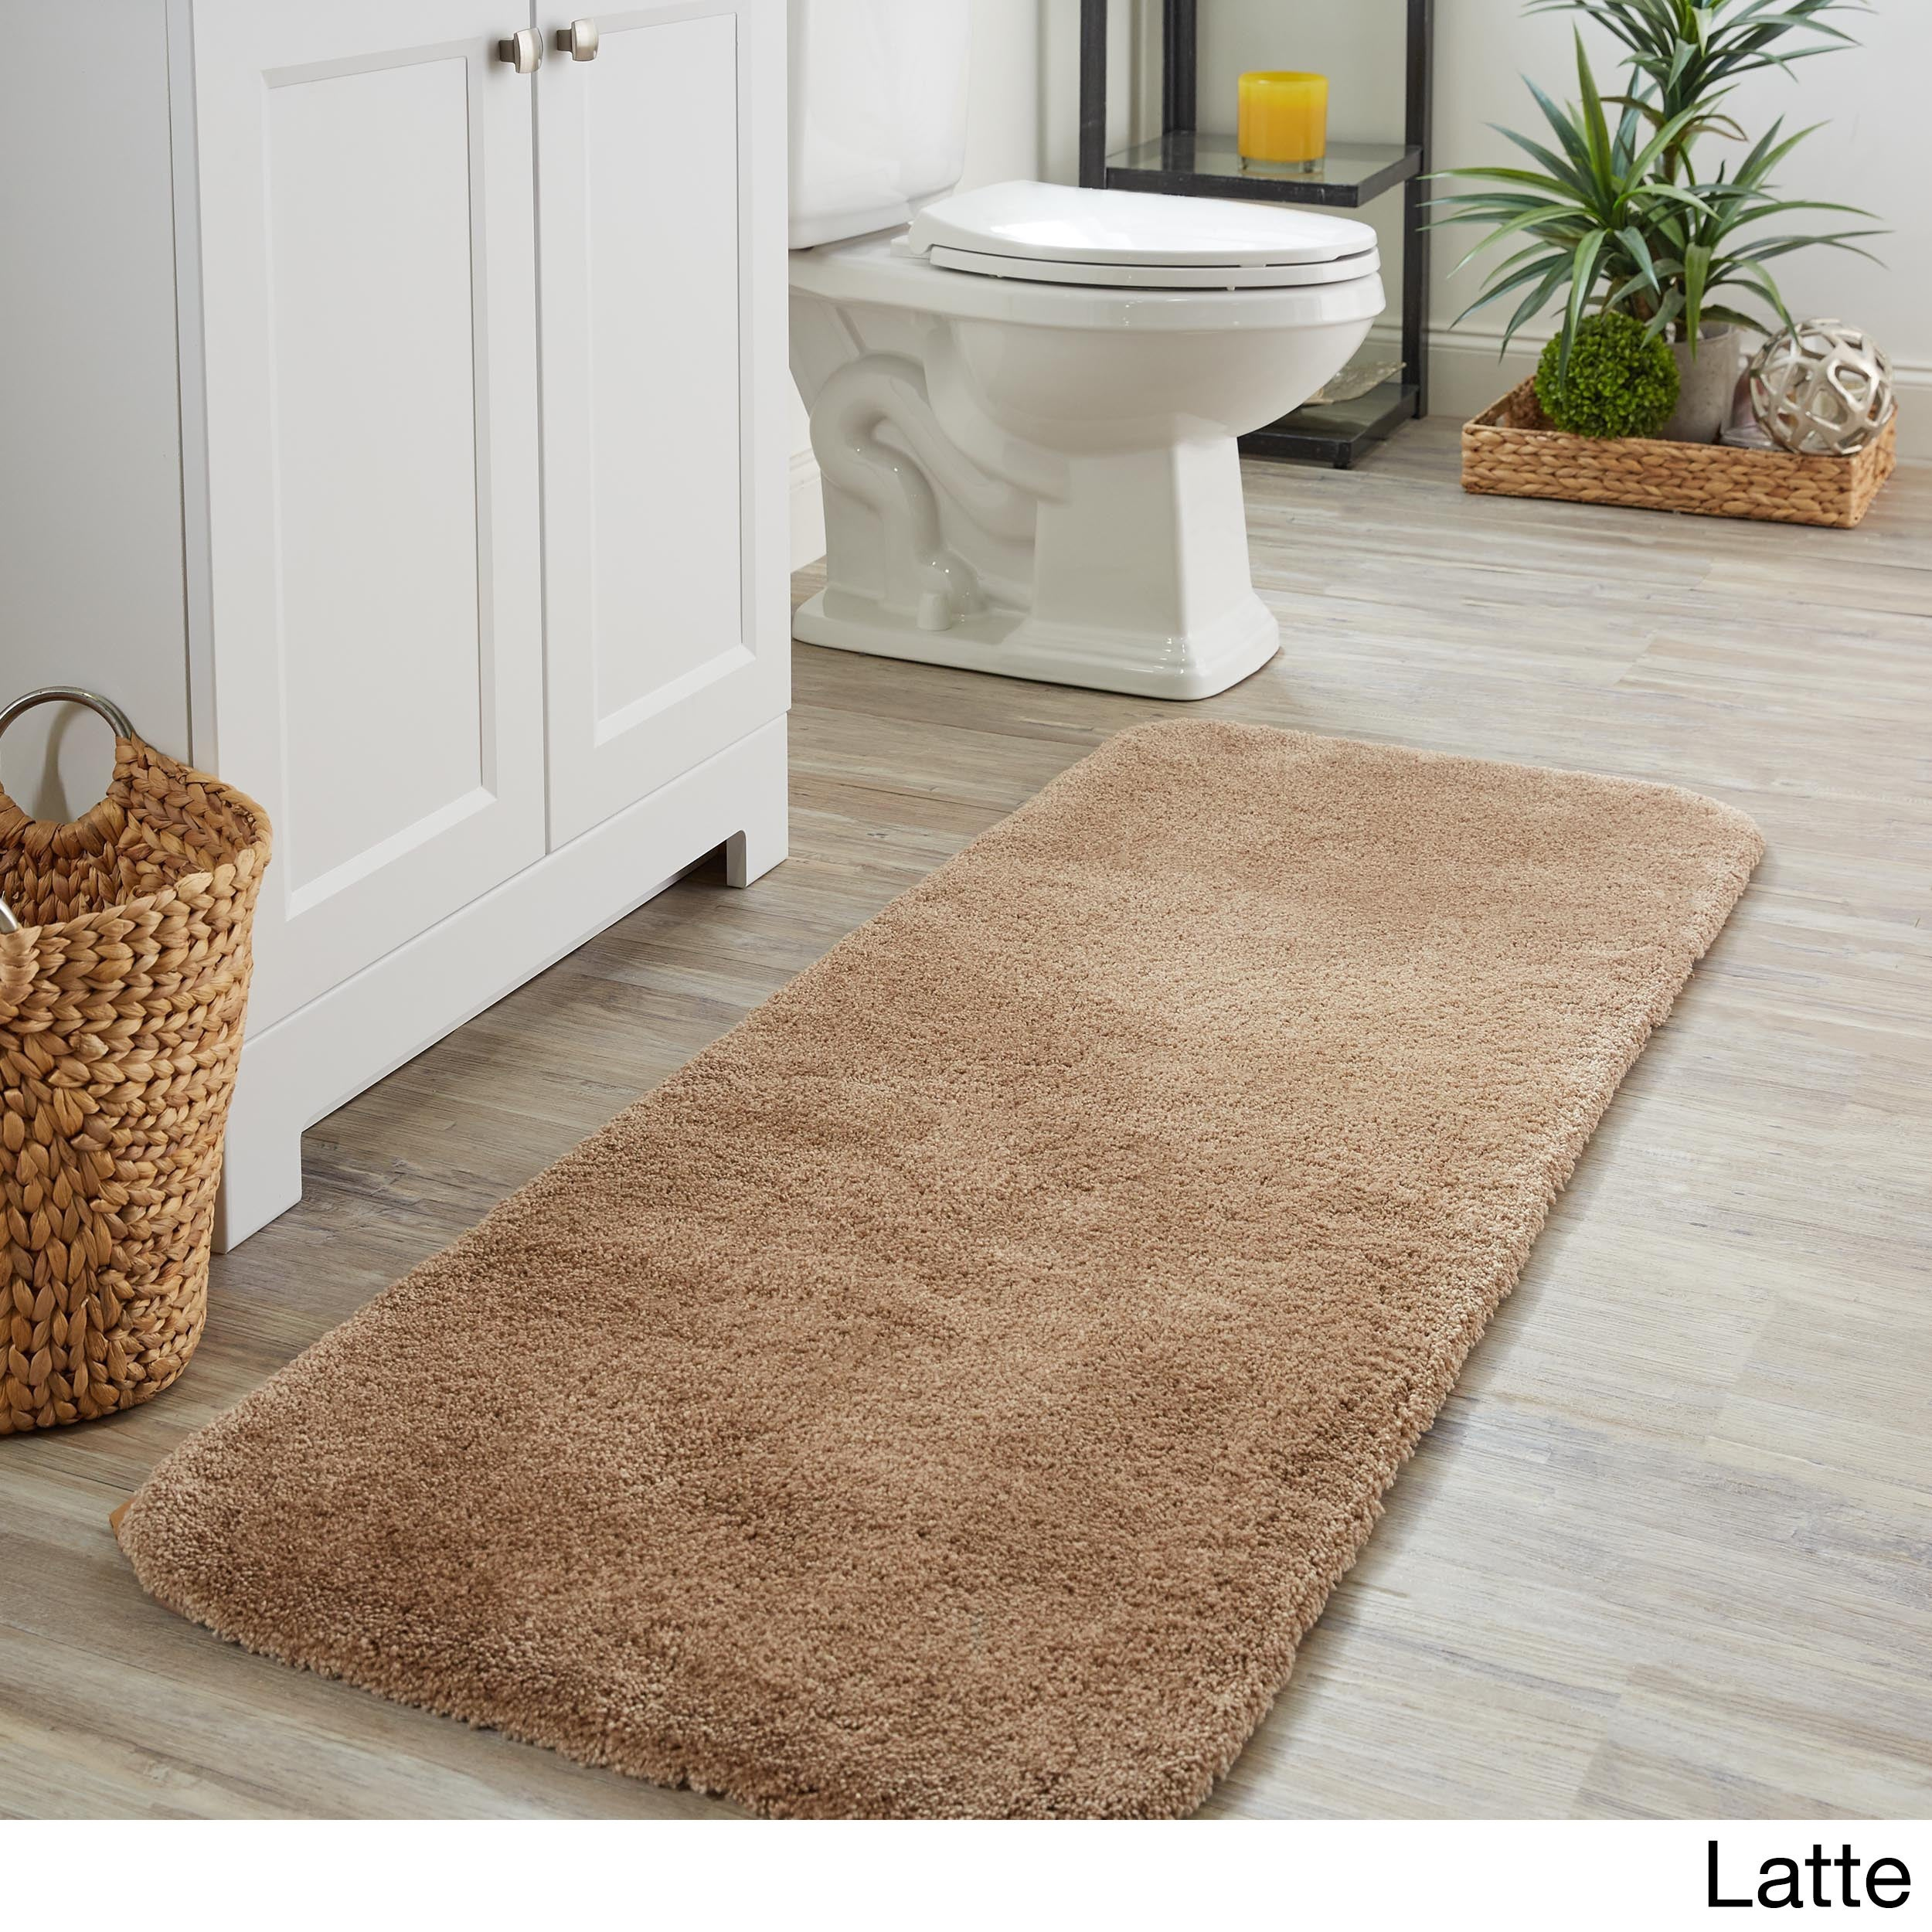 Bath Rugs & Bath Mats For Less